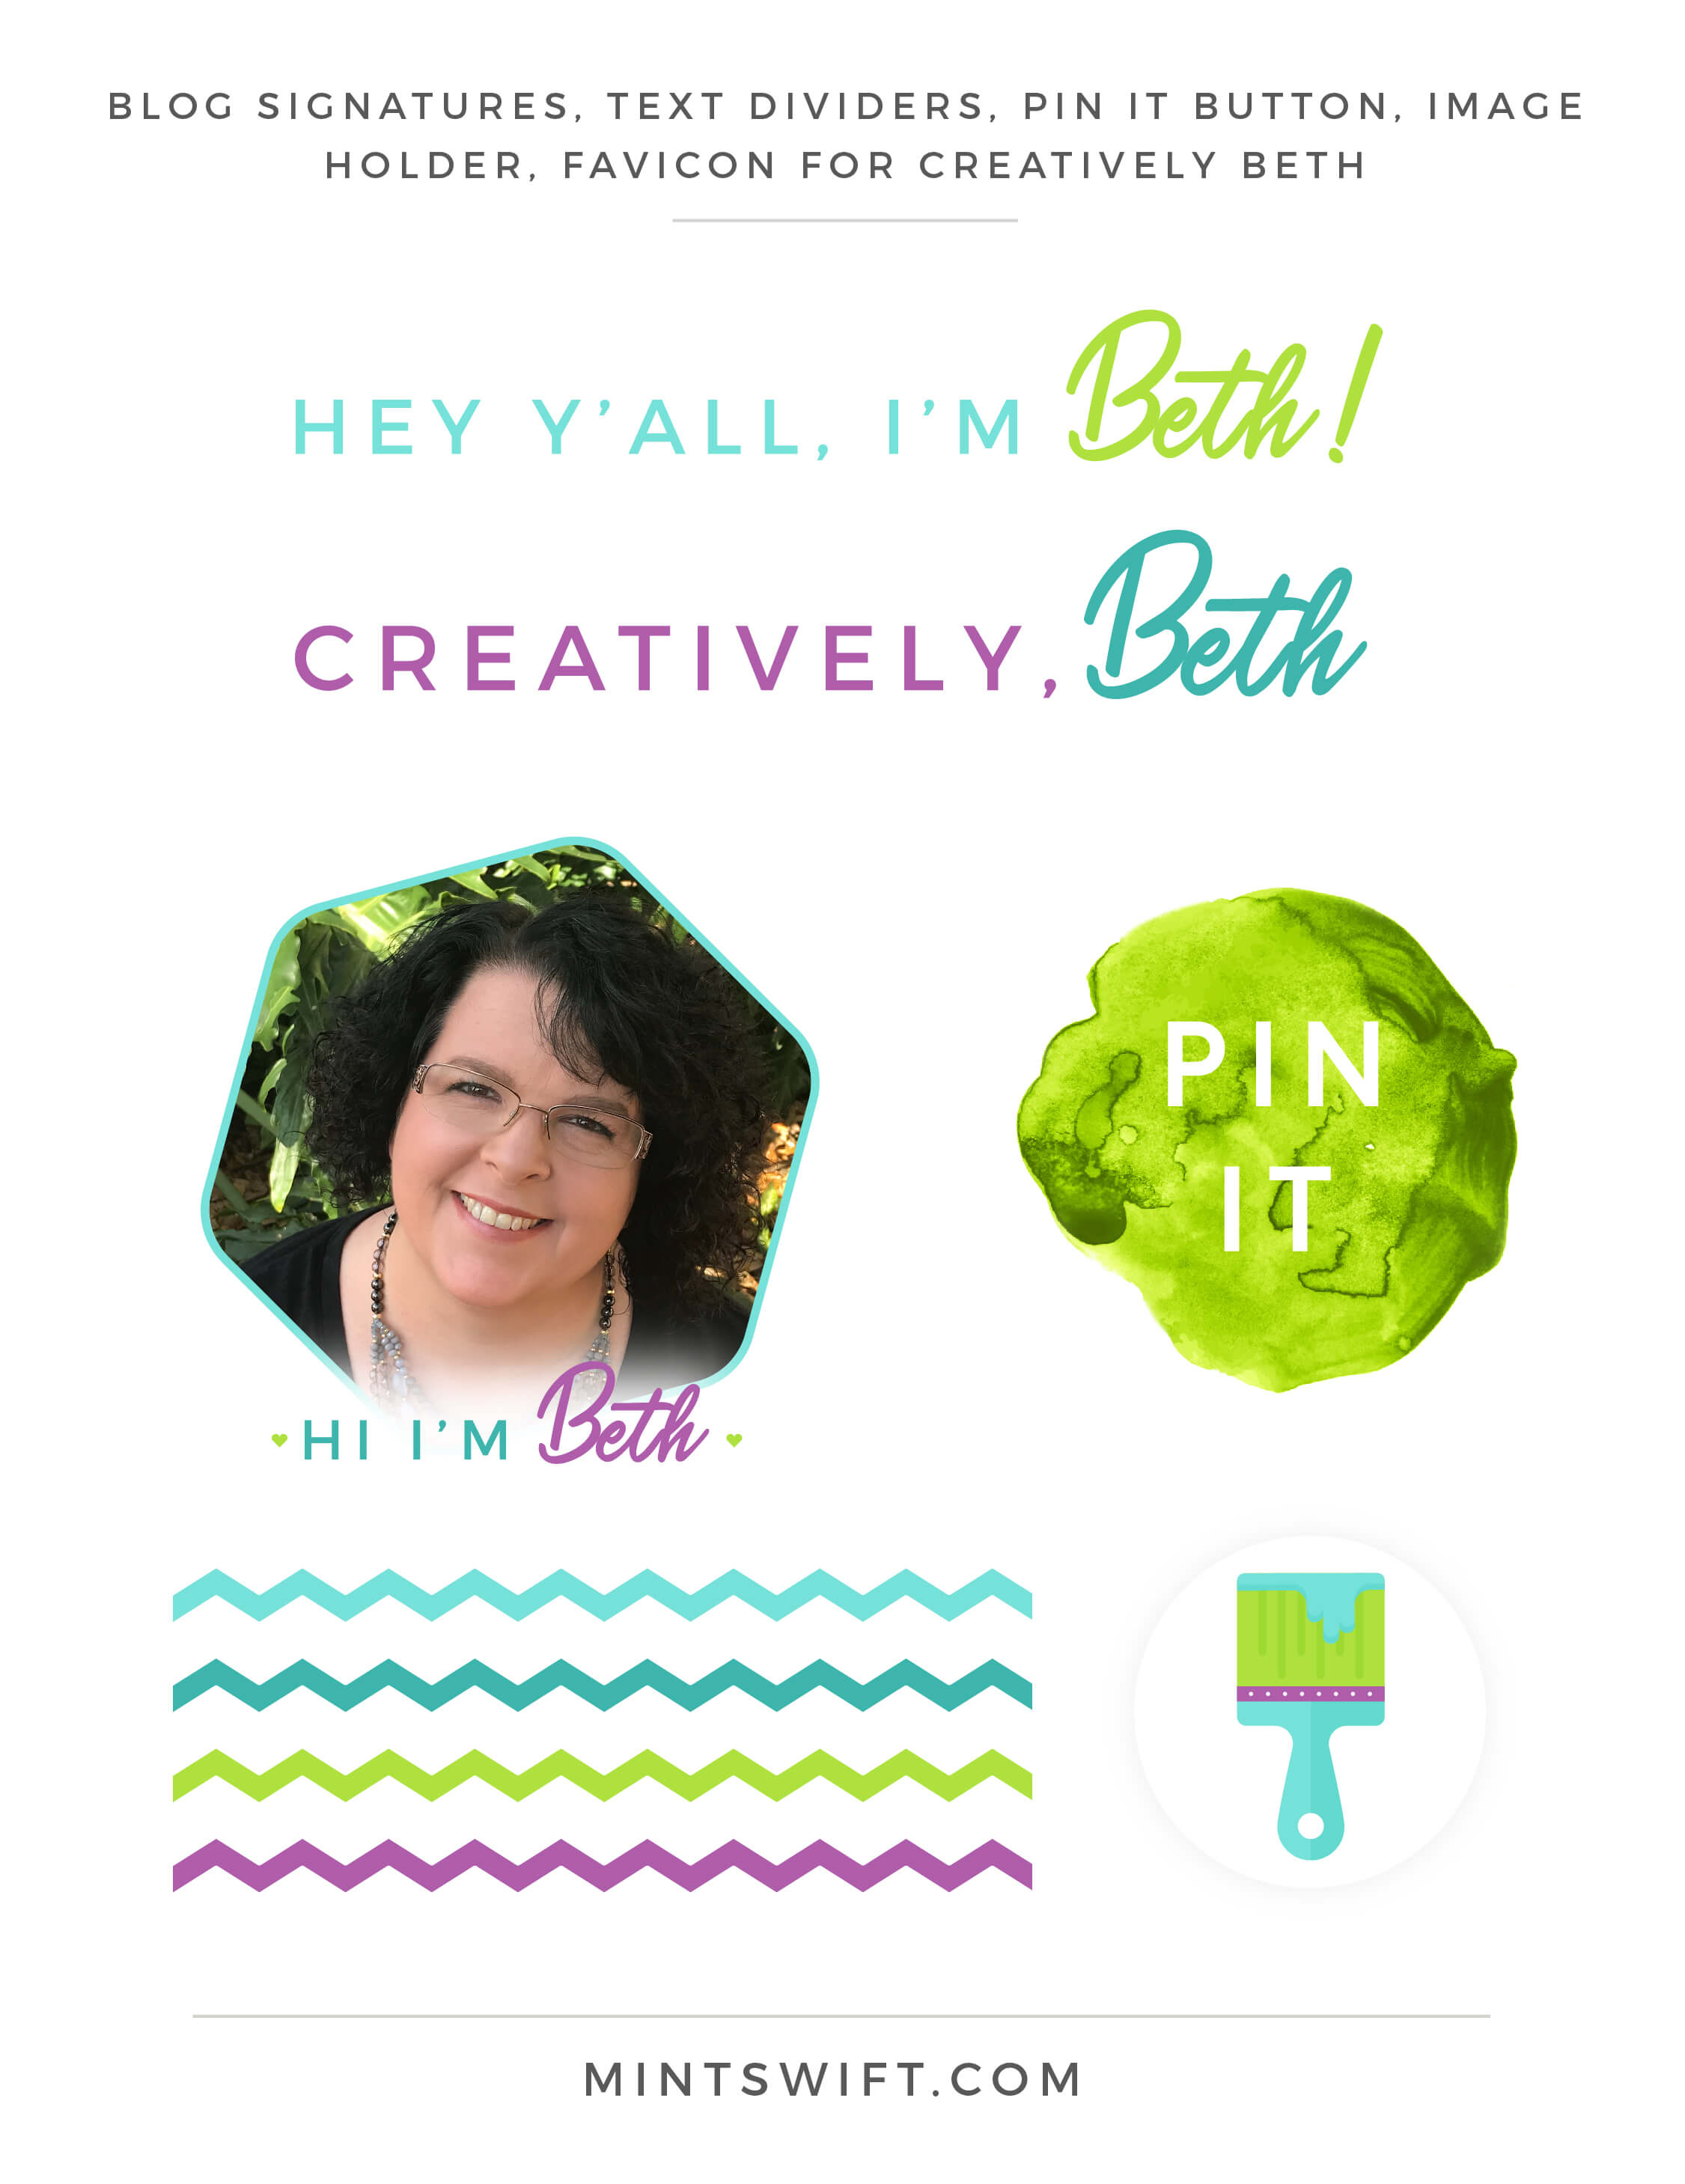 Creatively Beth - Blog signatures, Text Dividers, Pin it button, Image holder, Favicon - Brand & Website Design - MintSwift